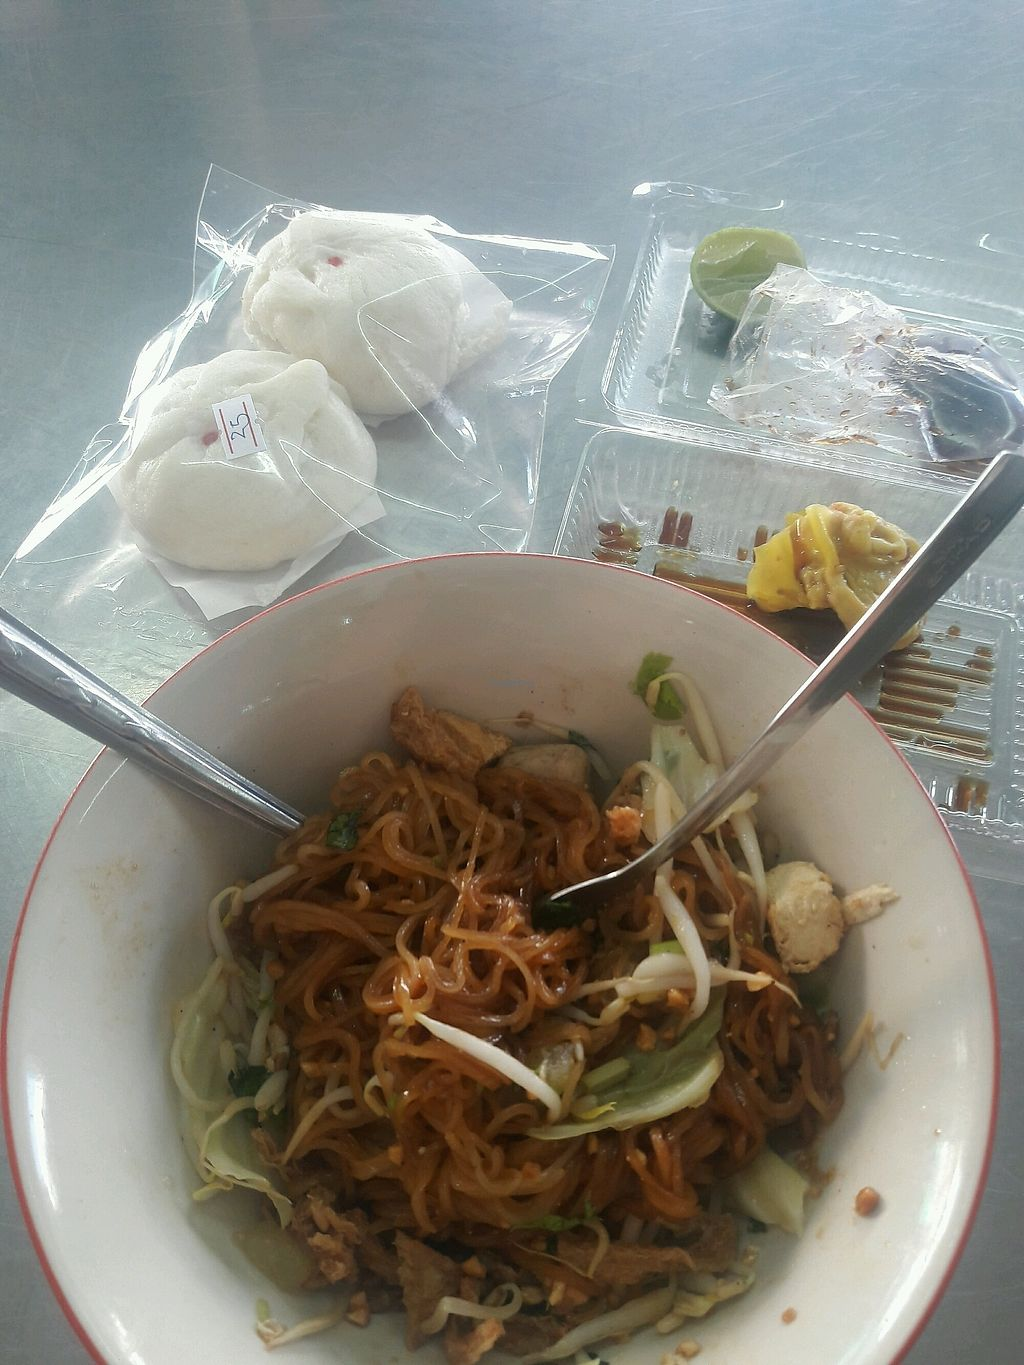 """Photo of REMOVED: Jair  by <a href=""""/members/profile/DanJy"""">DanJy</a> <br/>noodles bun and dumplings 100% vegan <br/> December 29, 2017  - <a href='/contact/abuse/image/86066/340314'>Report</a>"""